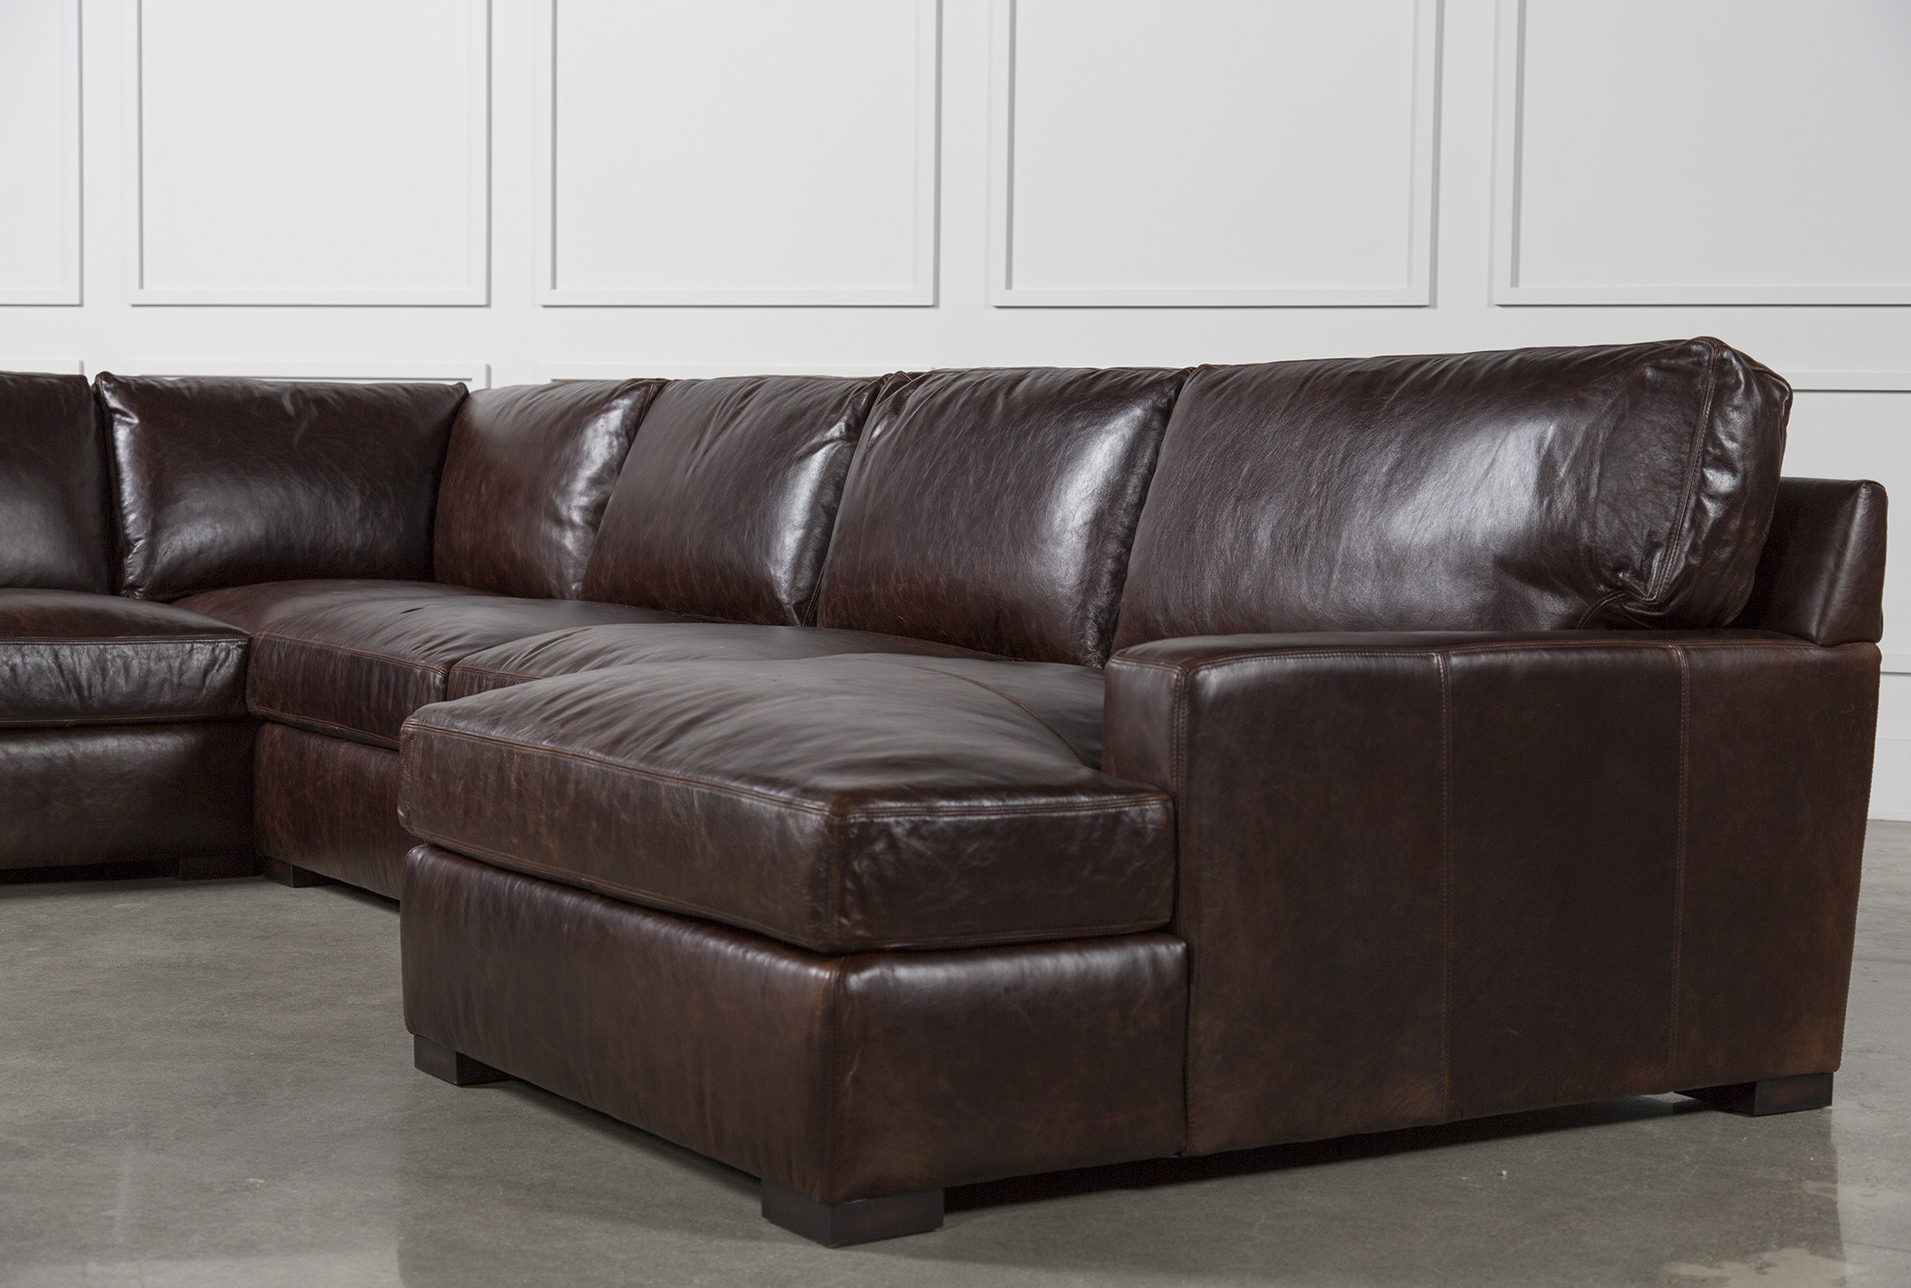 Widely Used Gordon 3 Piece Sectionals With Raf Chaise In Gordon 3 Piece Sectional W/laf Chaise (View 7 of 20)